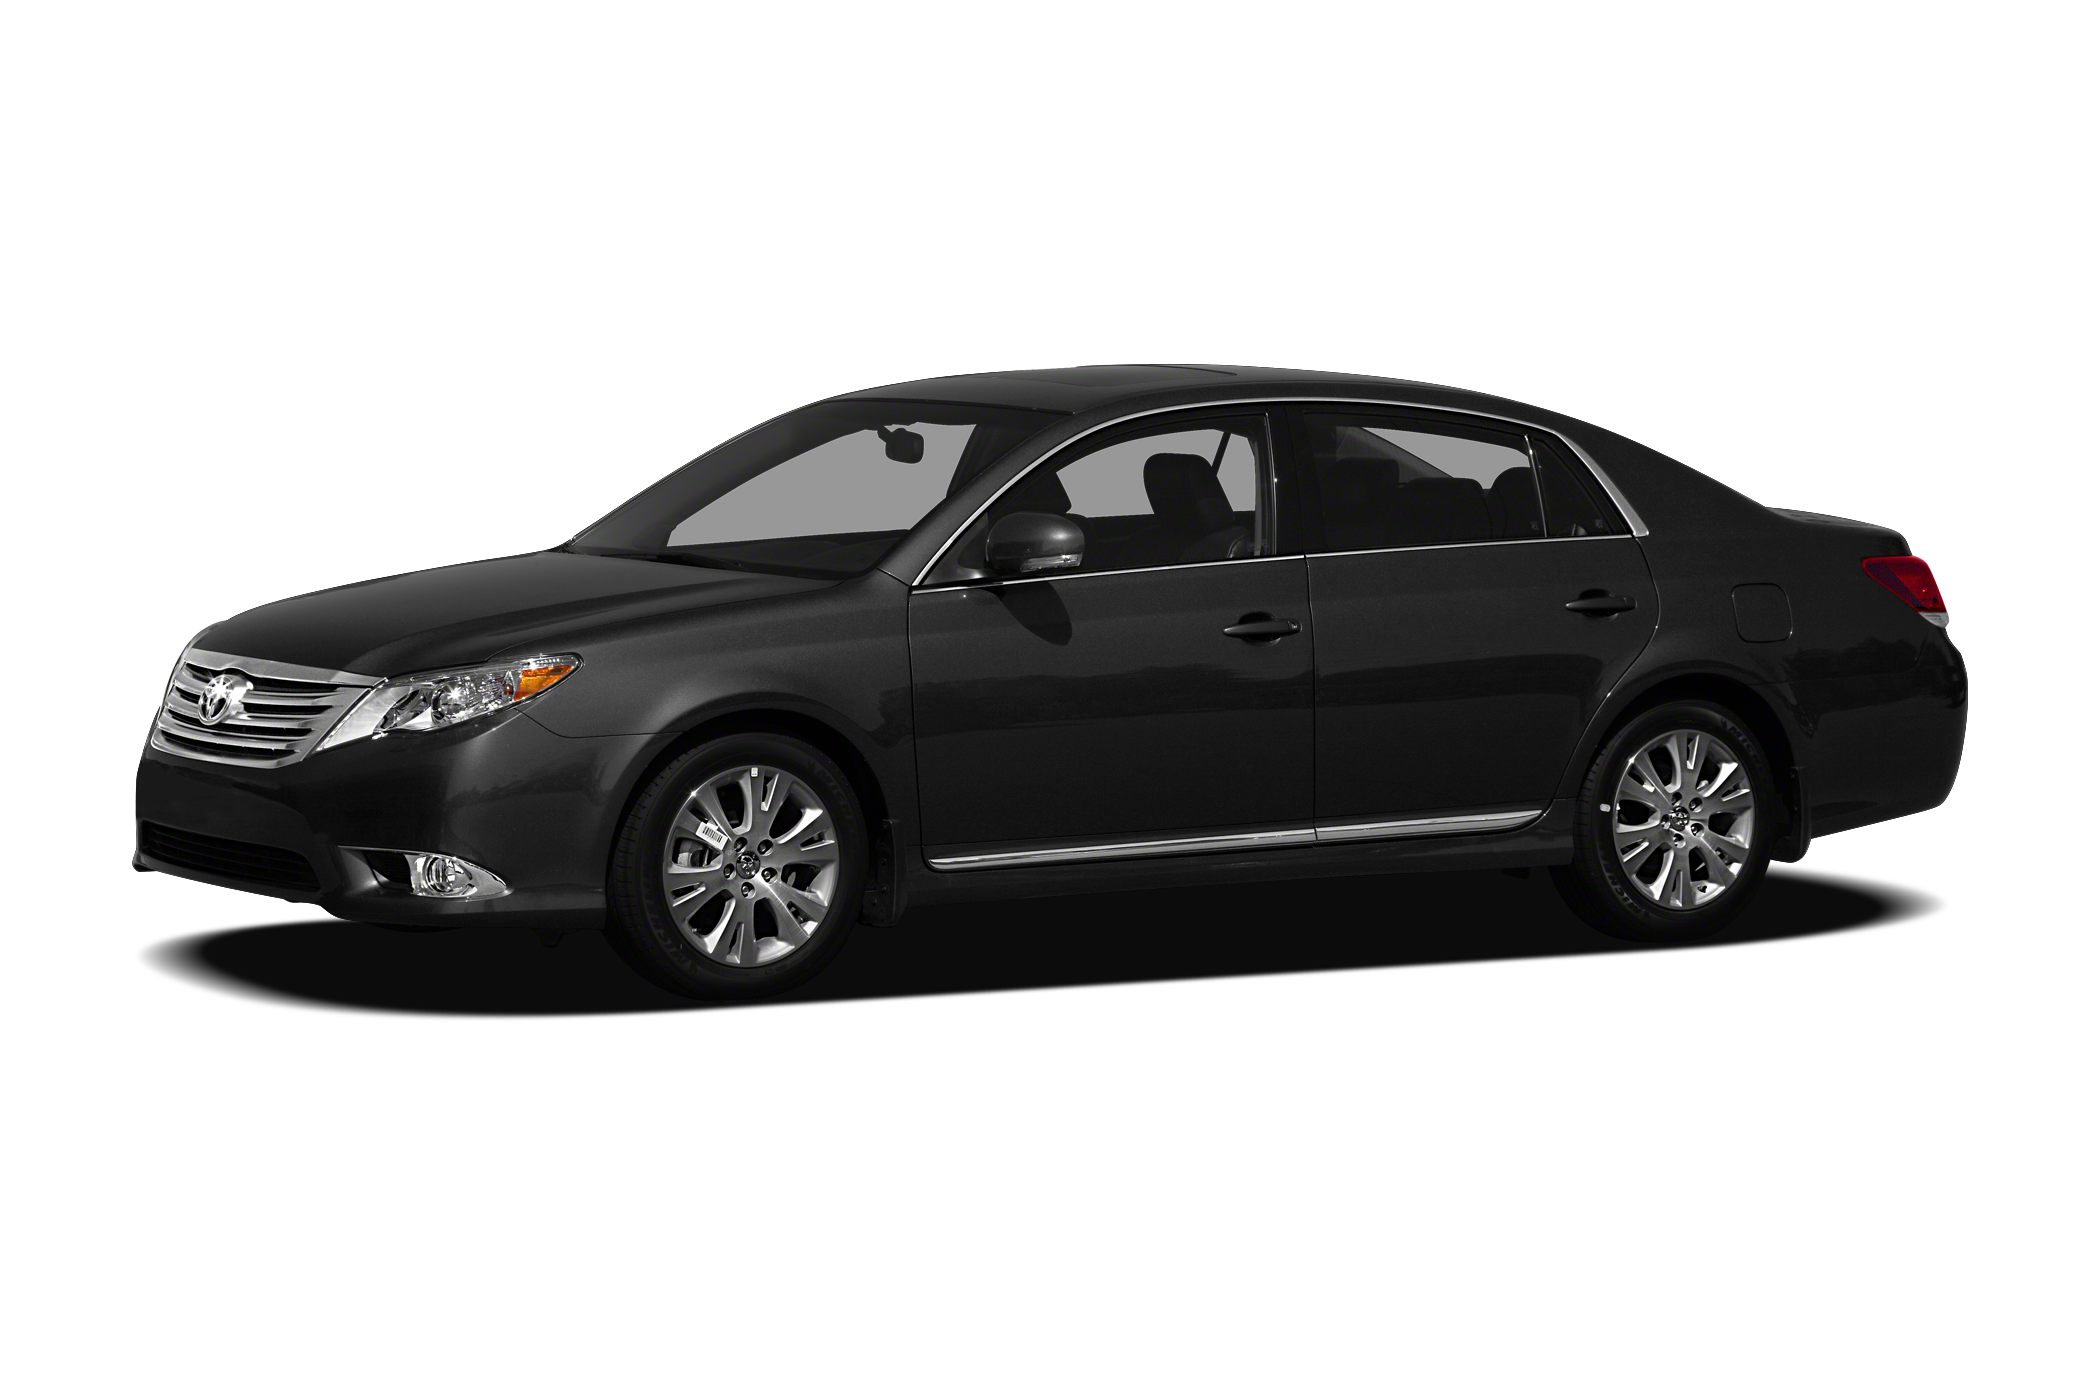 2012 Toyota Avalon Base OUR PRICESYoure probably wondering why our prices are so much lower than